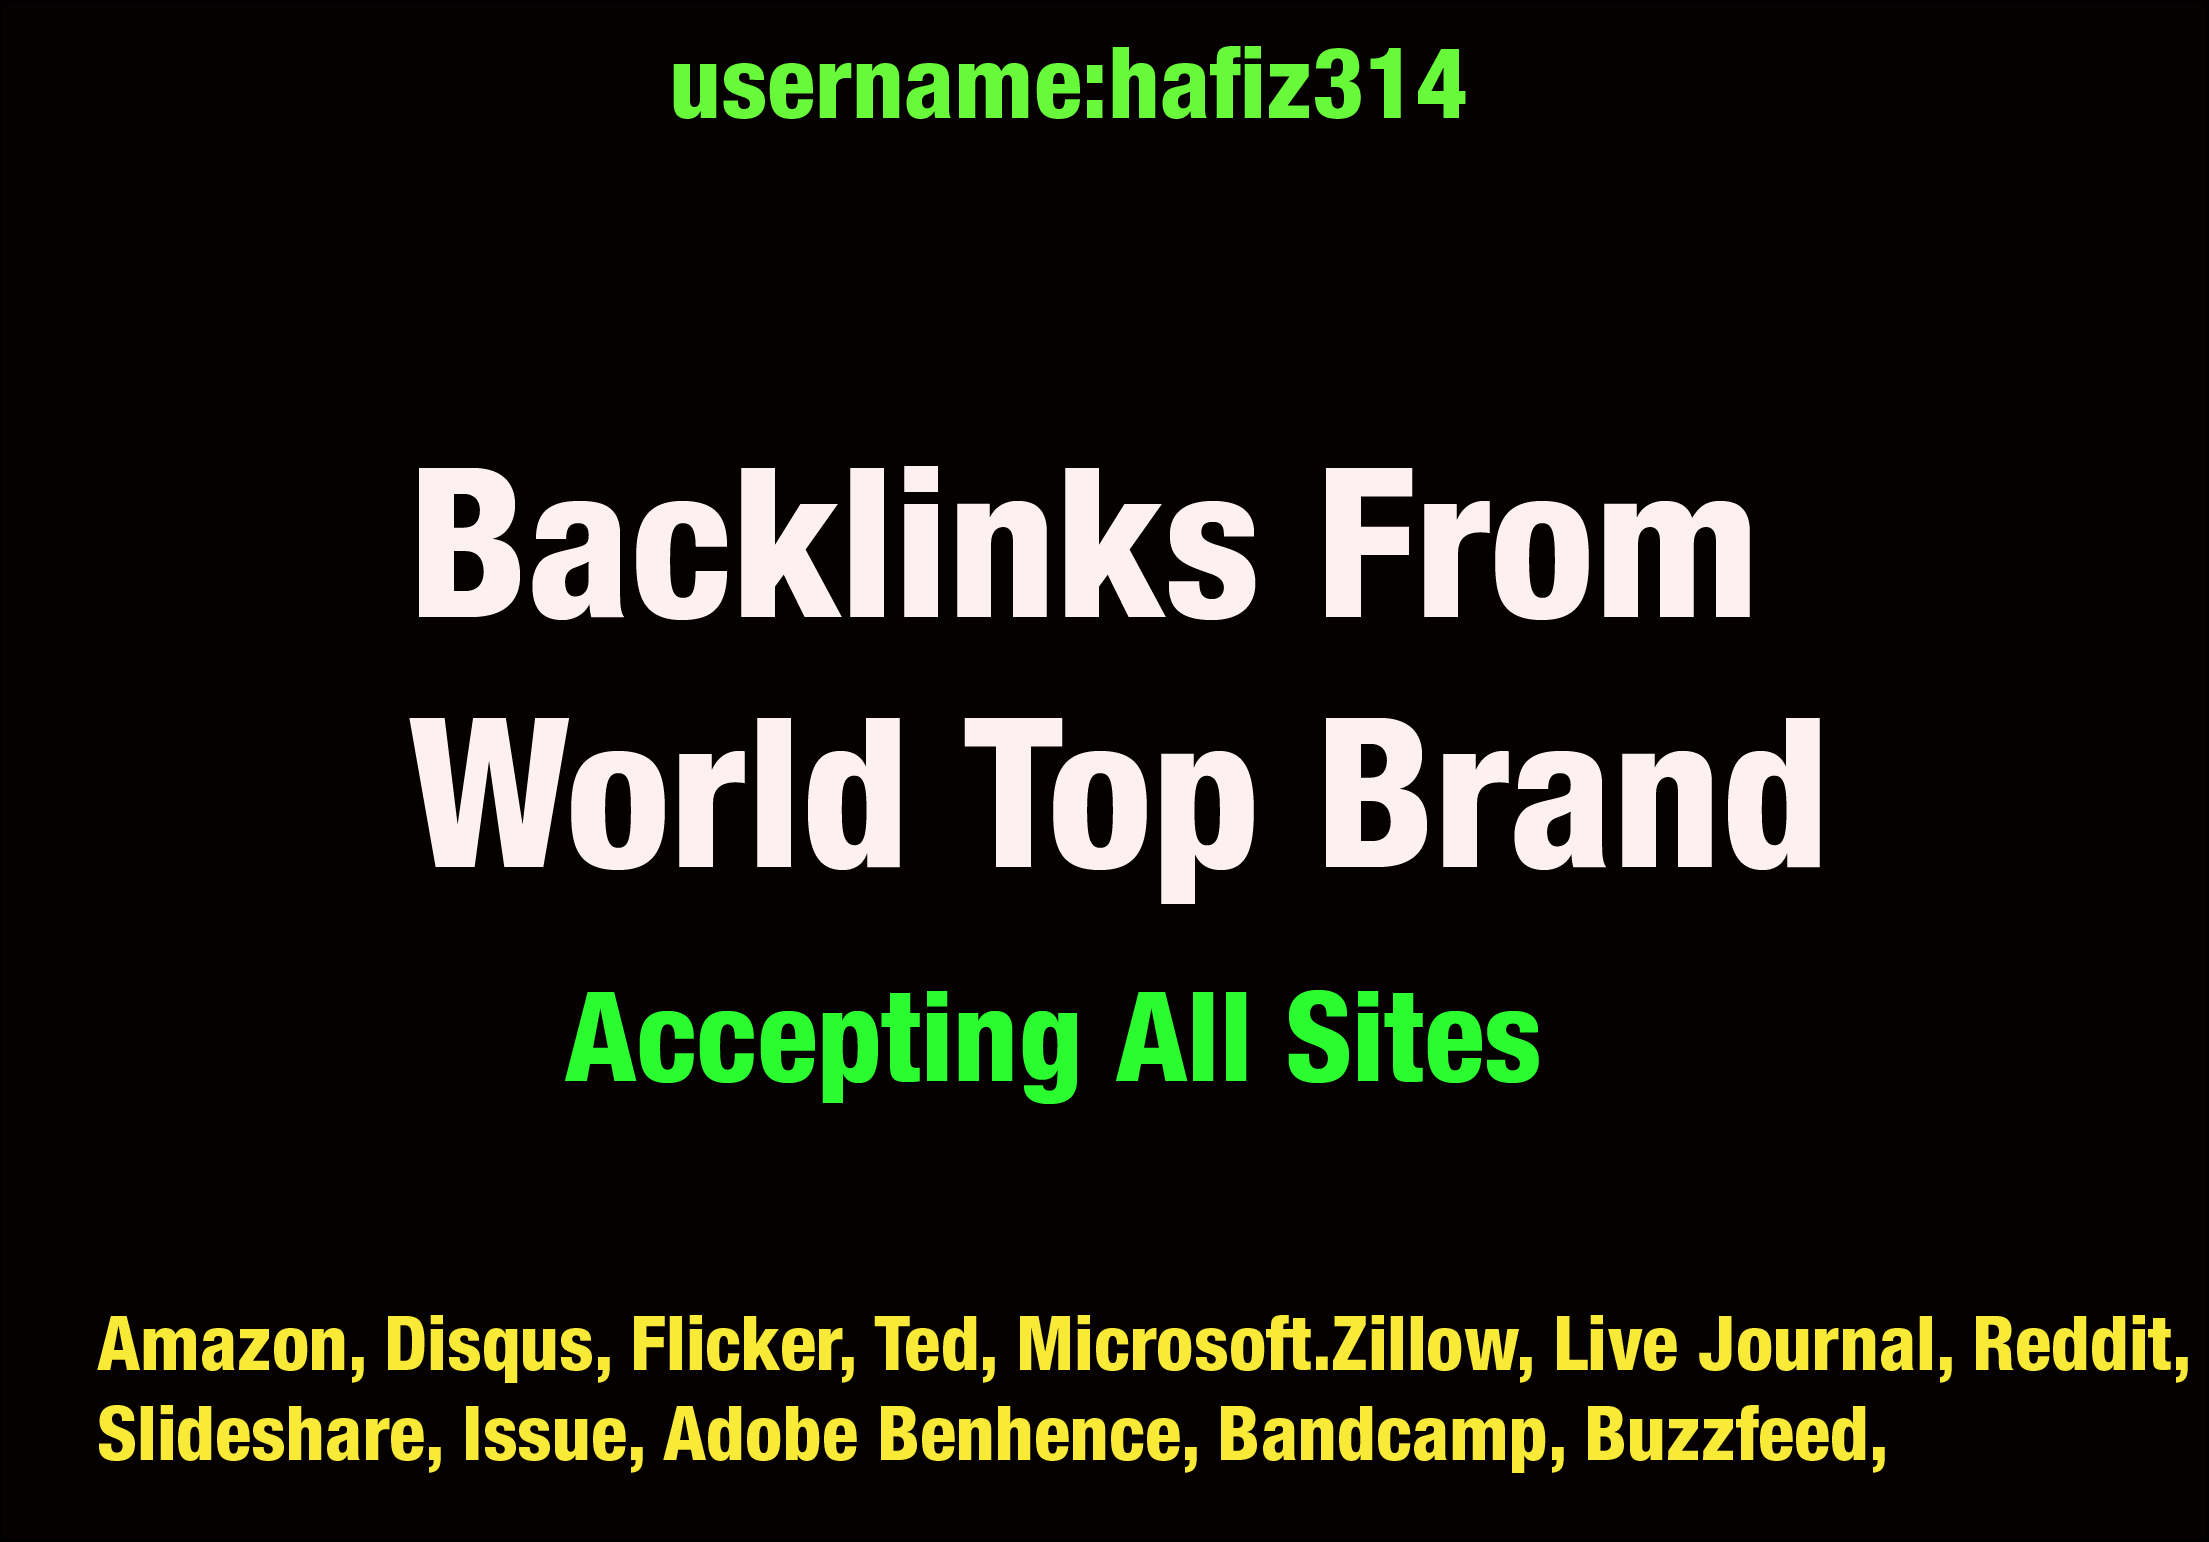 40 Profile Backlinks From World Top Brand